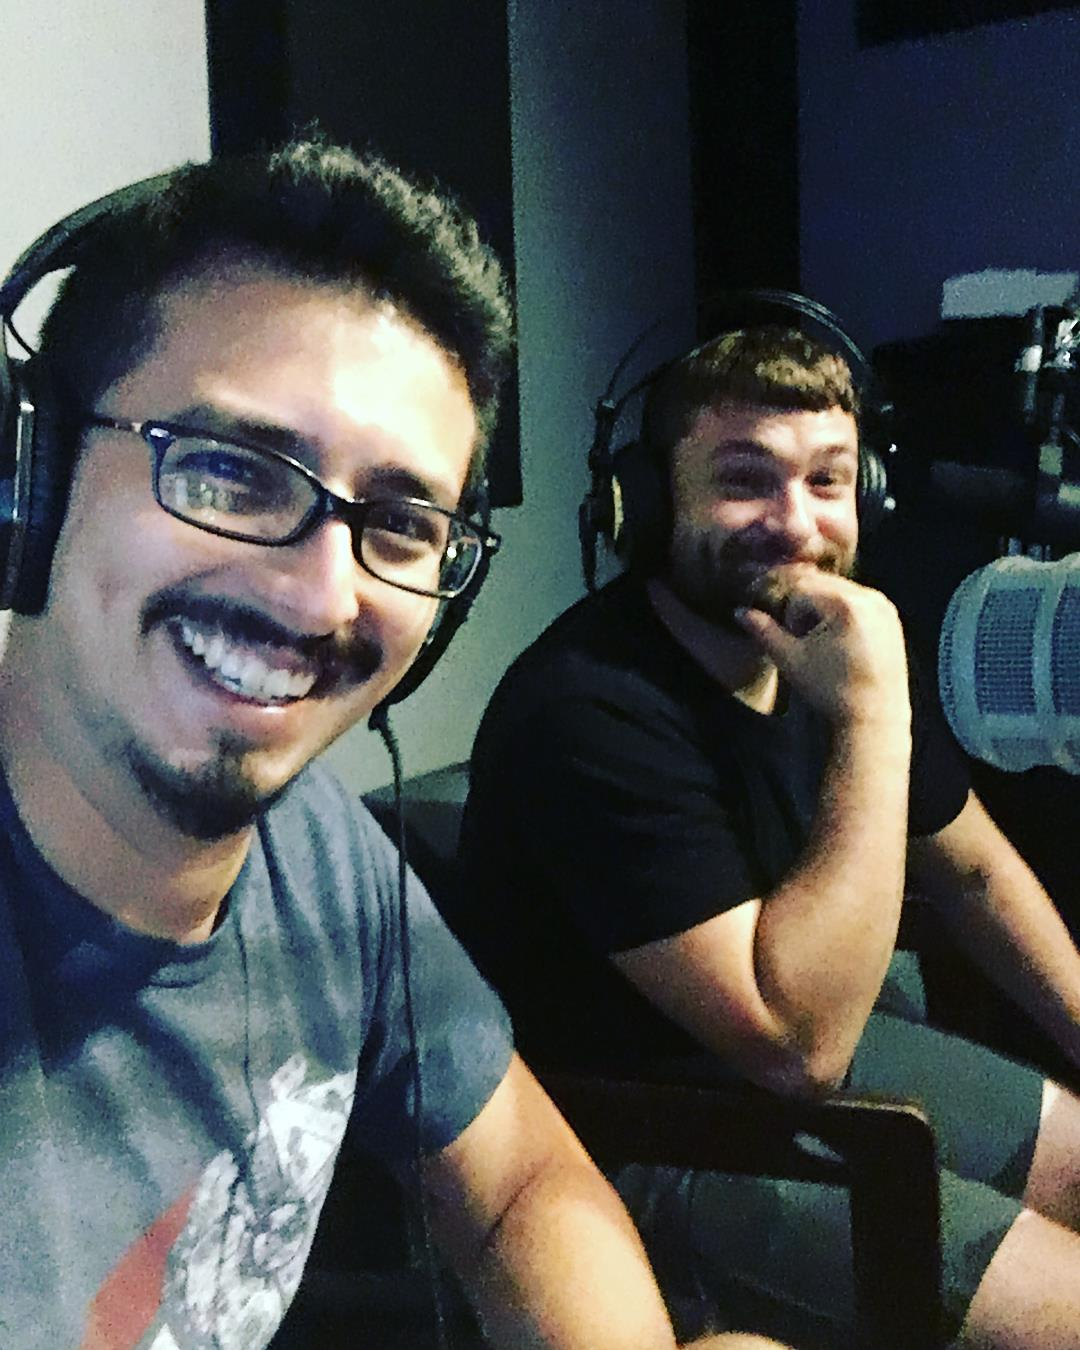 RBBC Live with bryan and frisco - live at 7pm on tuesday nights, hosted by Bryan and Frisco!Tune in for interviews with local business owners and live sessions with local musicians!Archived Shows